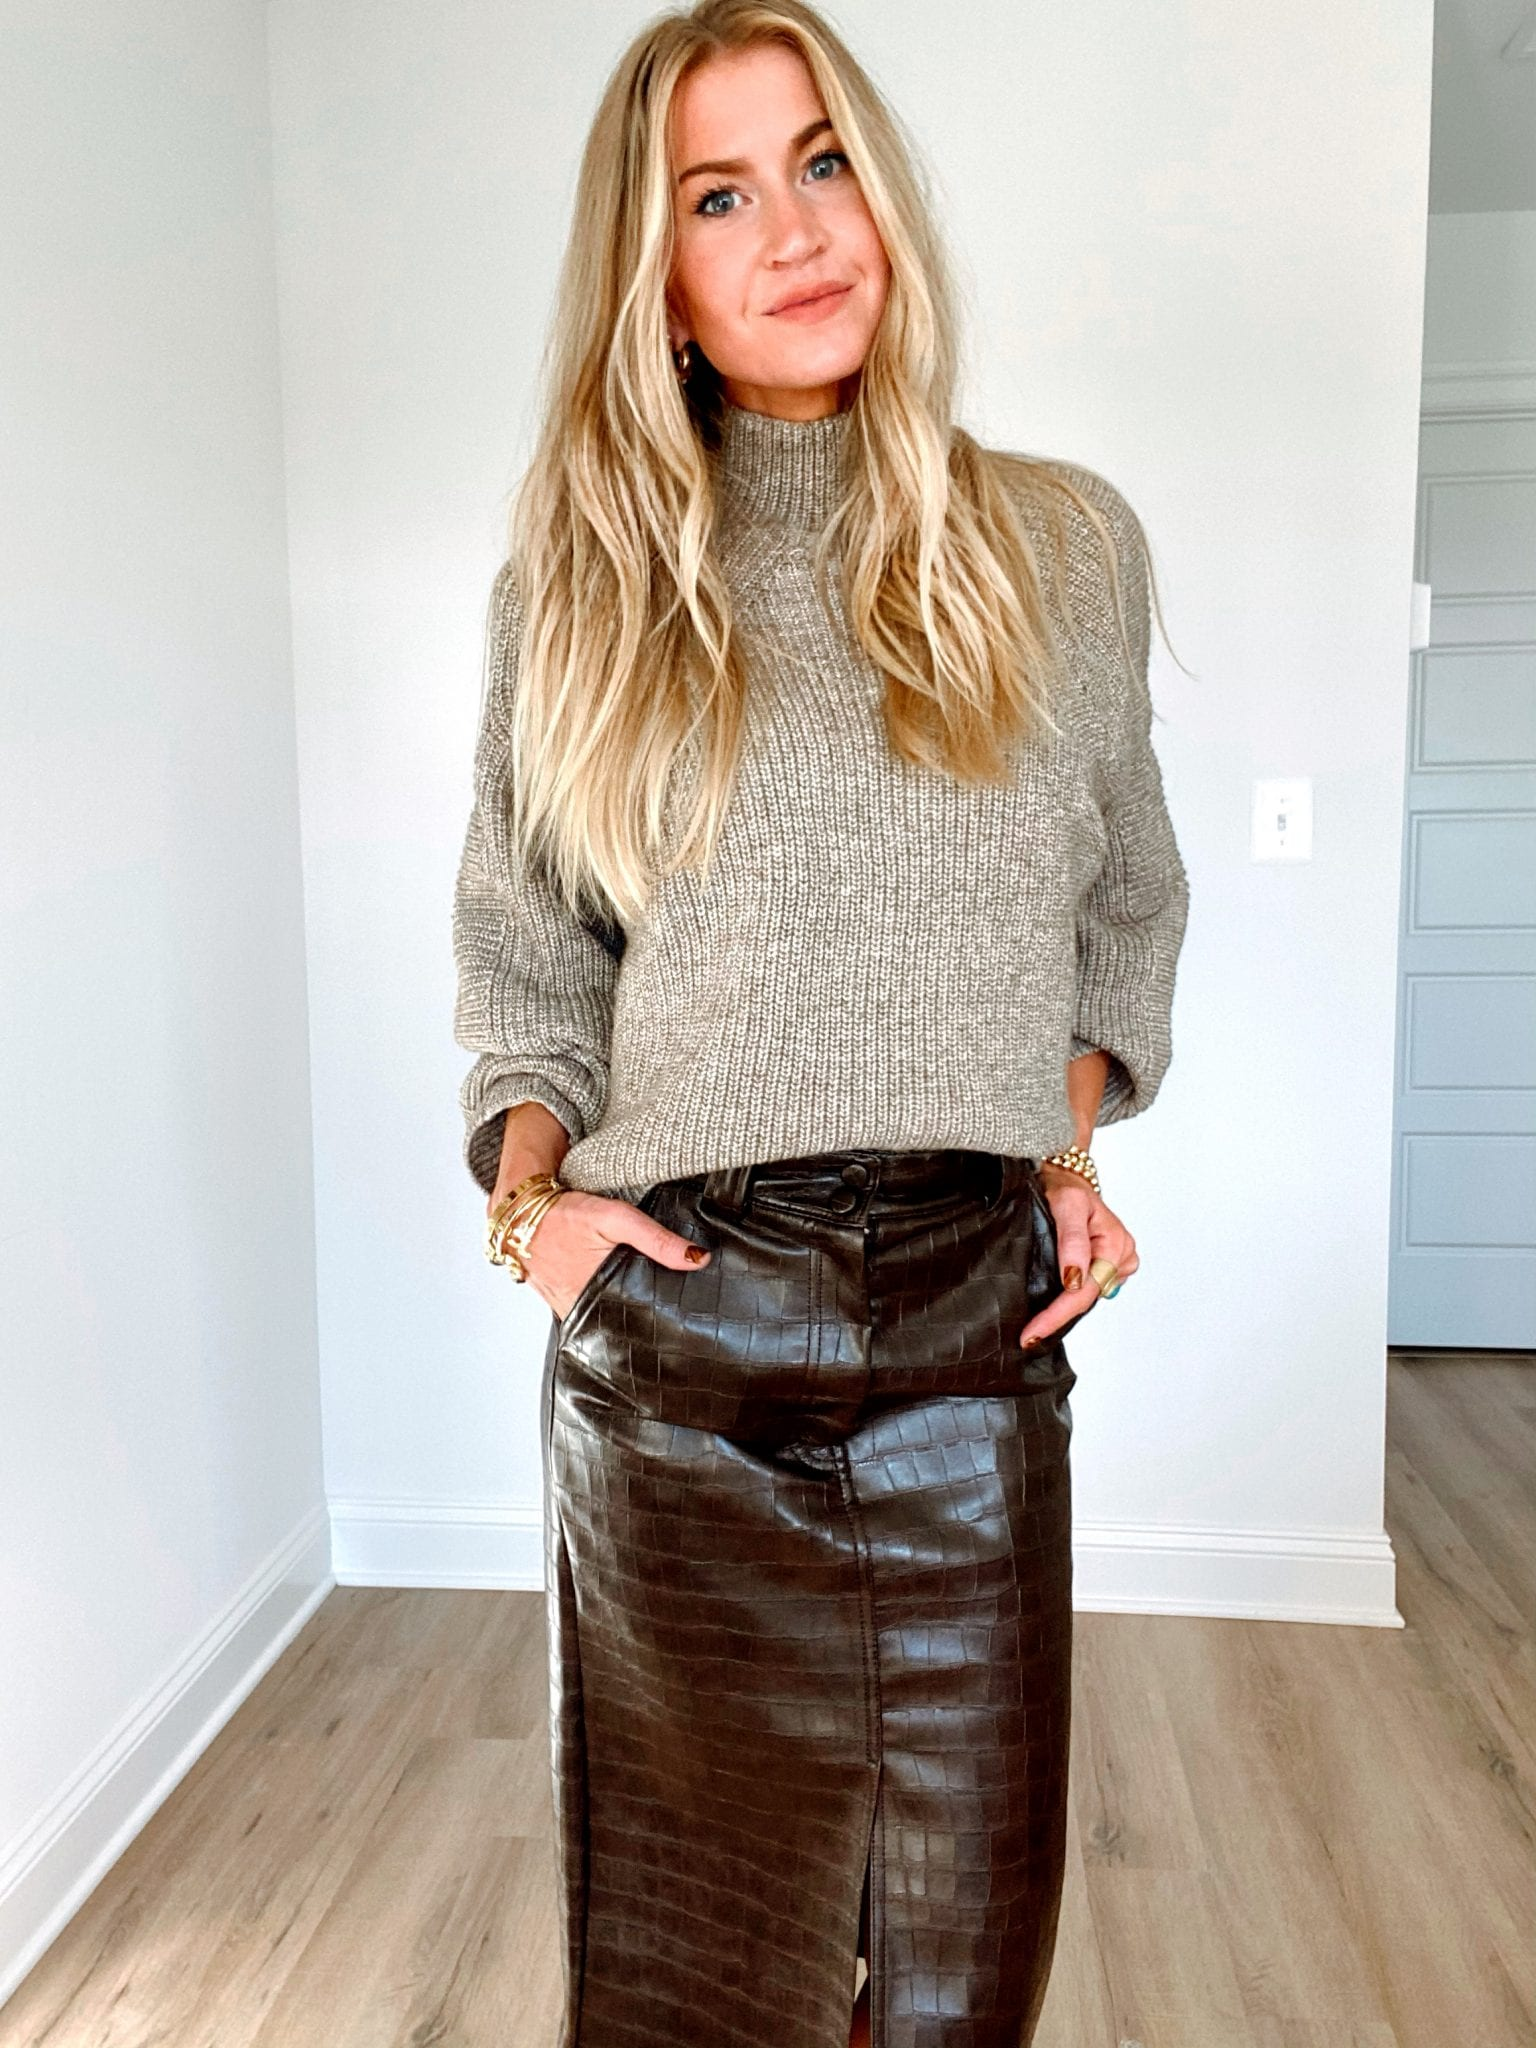 Chunky knit sweater + faux leather pencil skirt